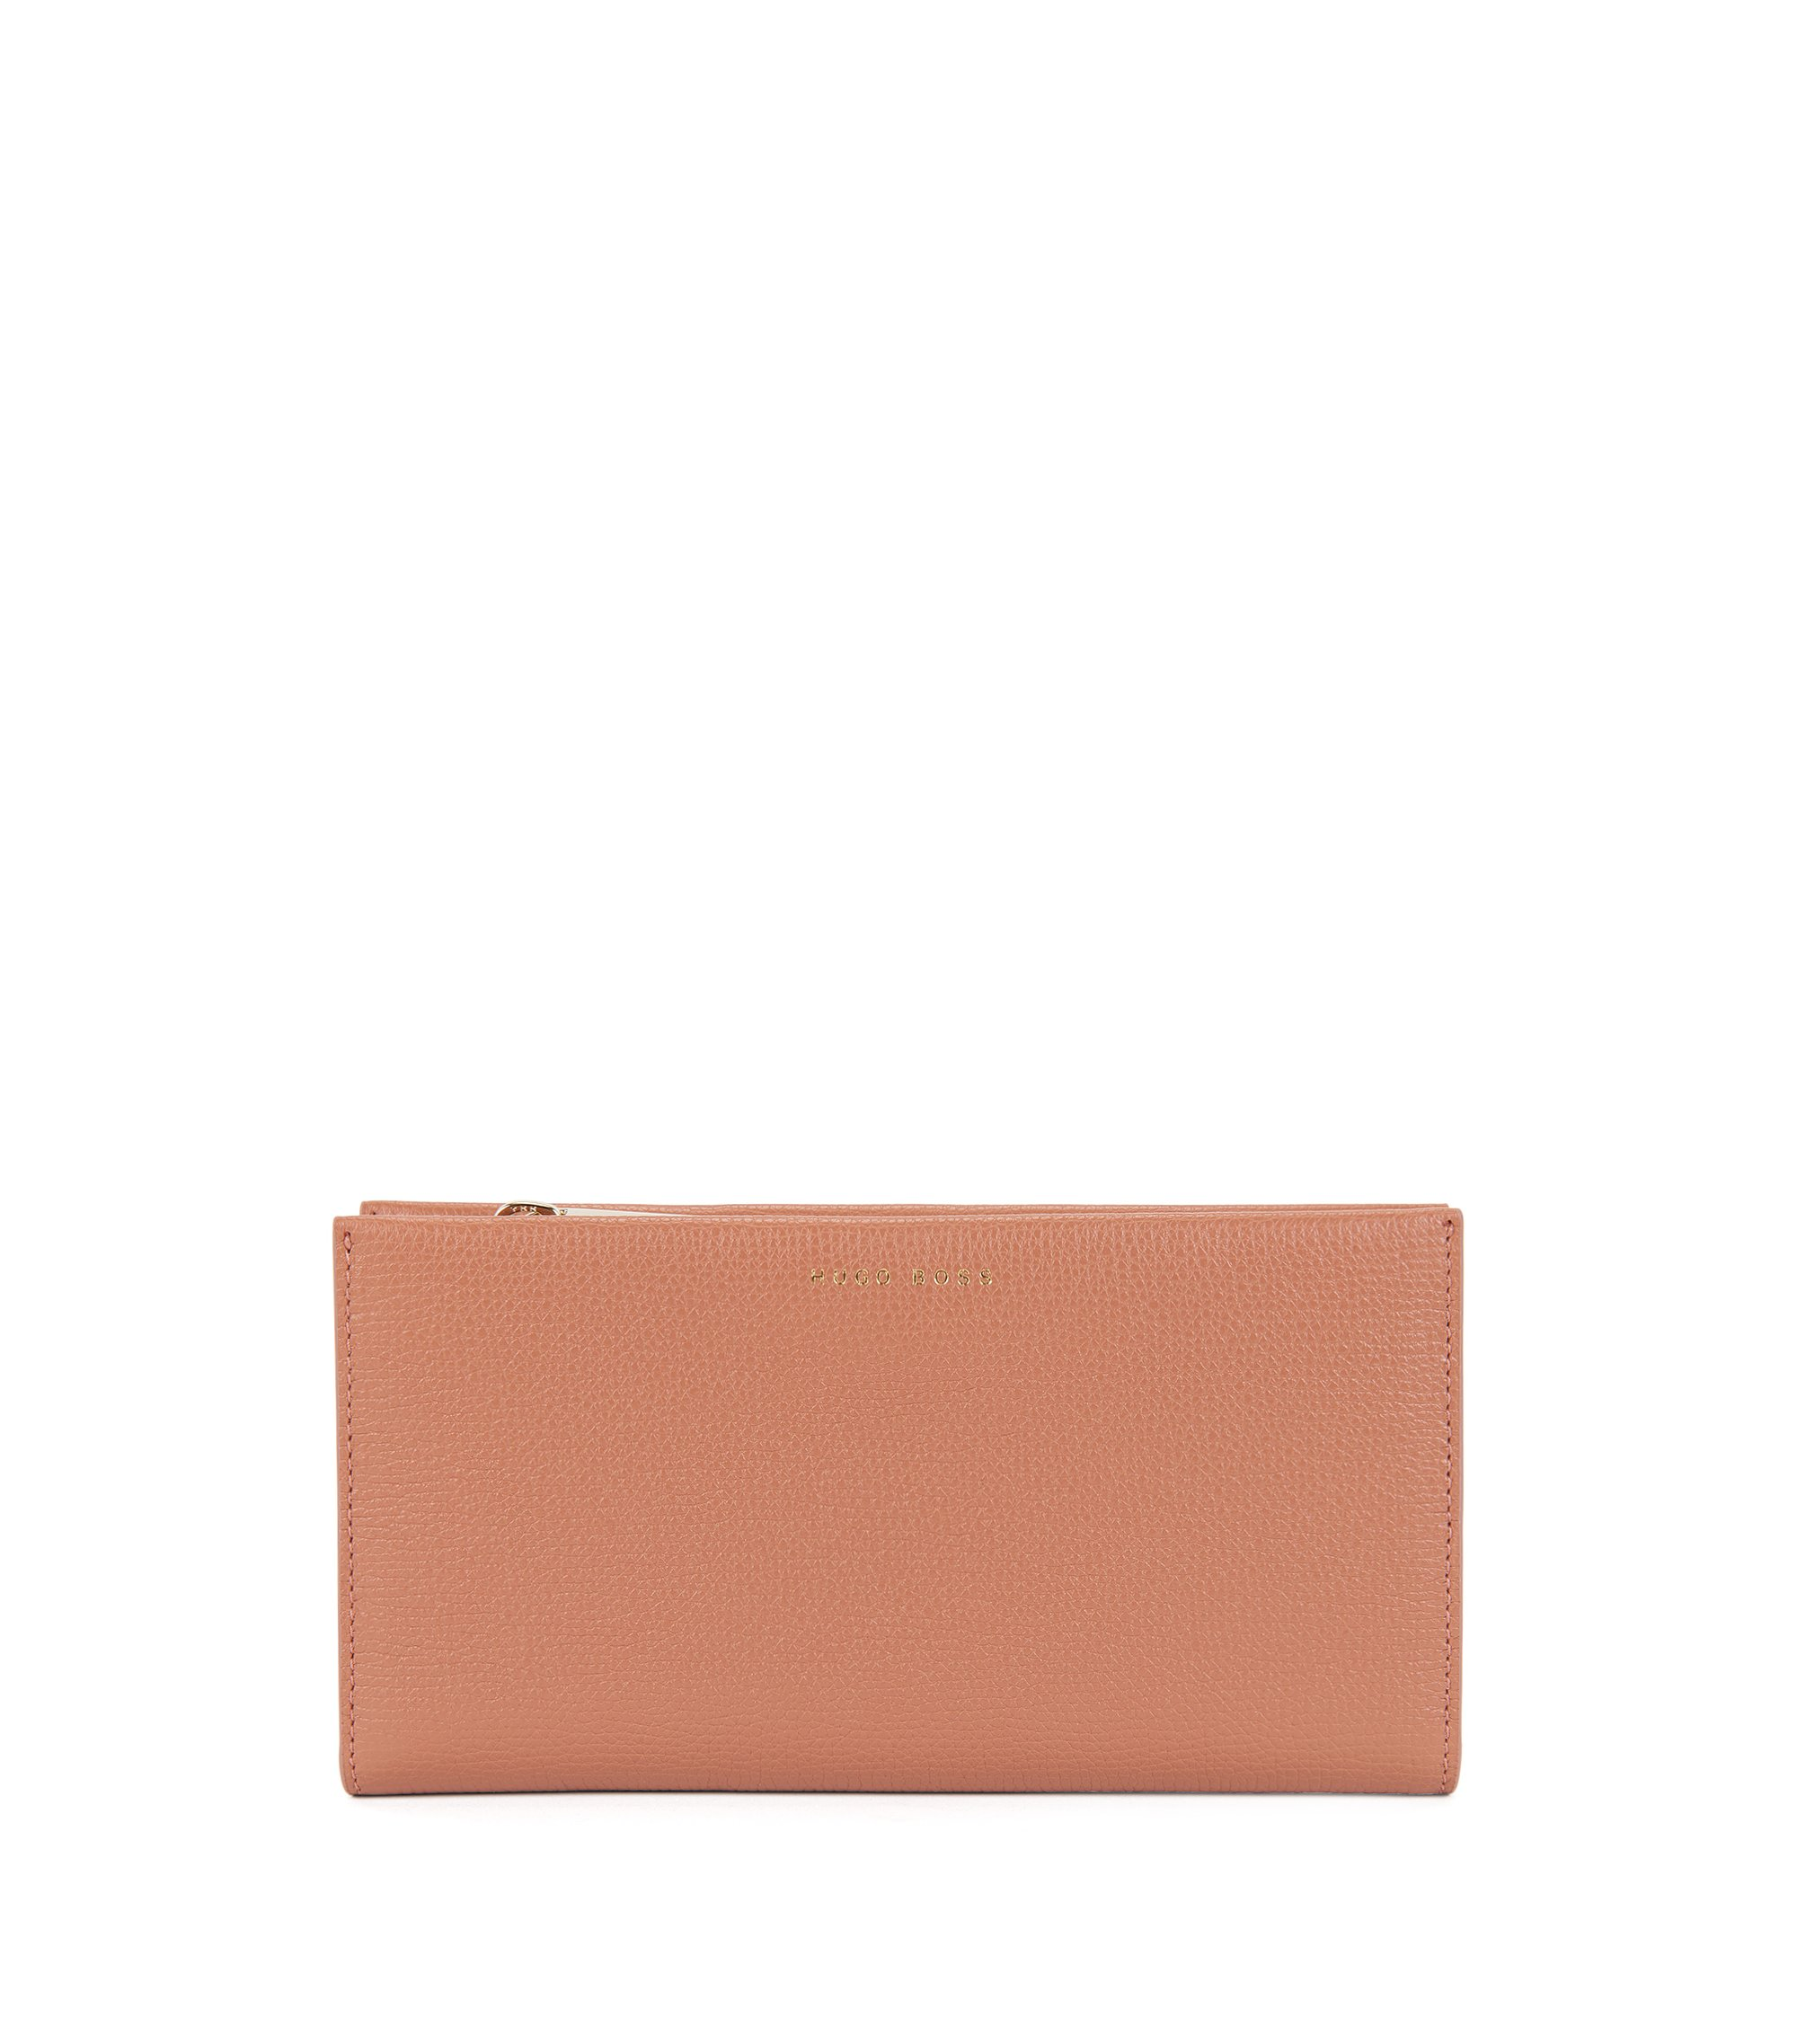 Ziparound wallet in grained calfskin leather, Light Beige